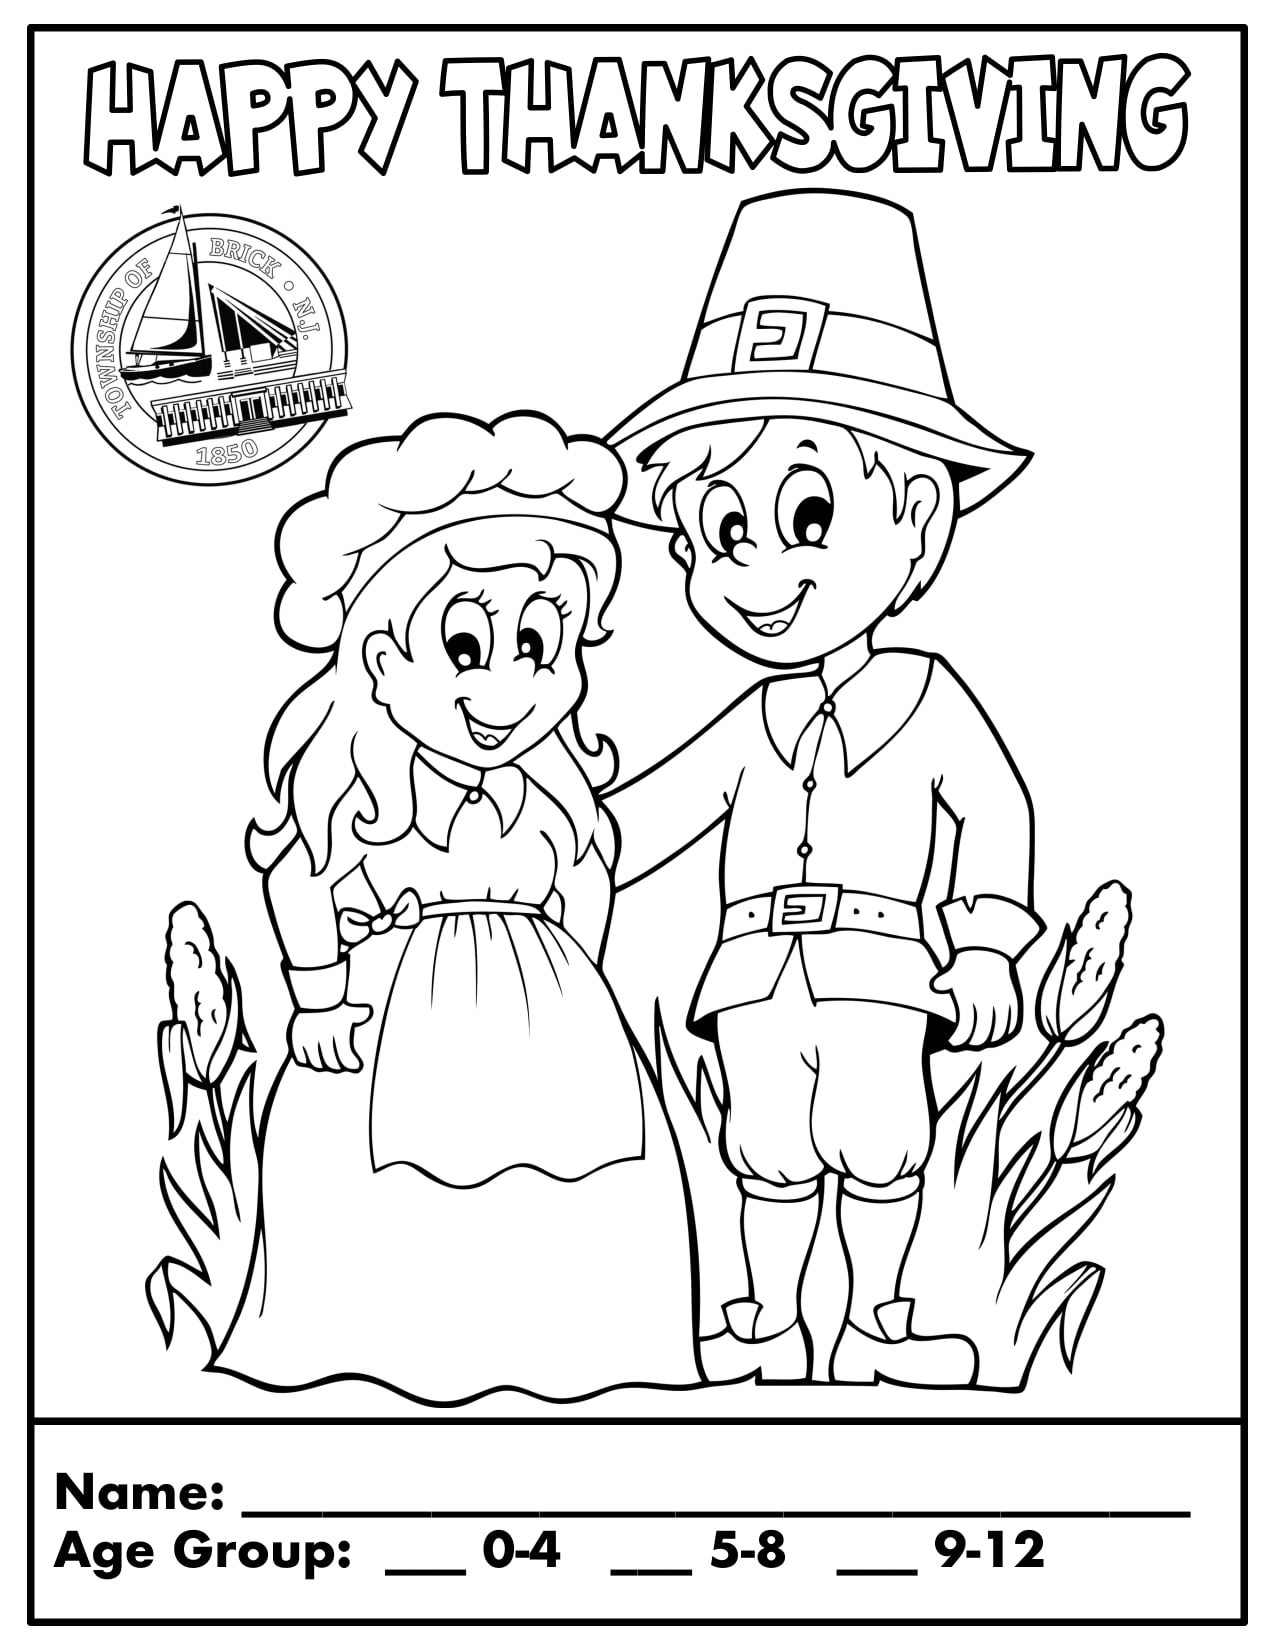 Brick Township's Thanksgiving coloring contest entree.